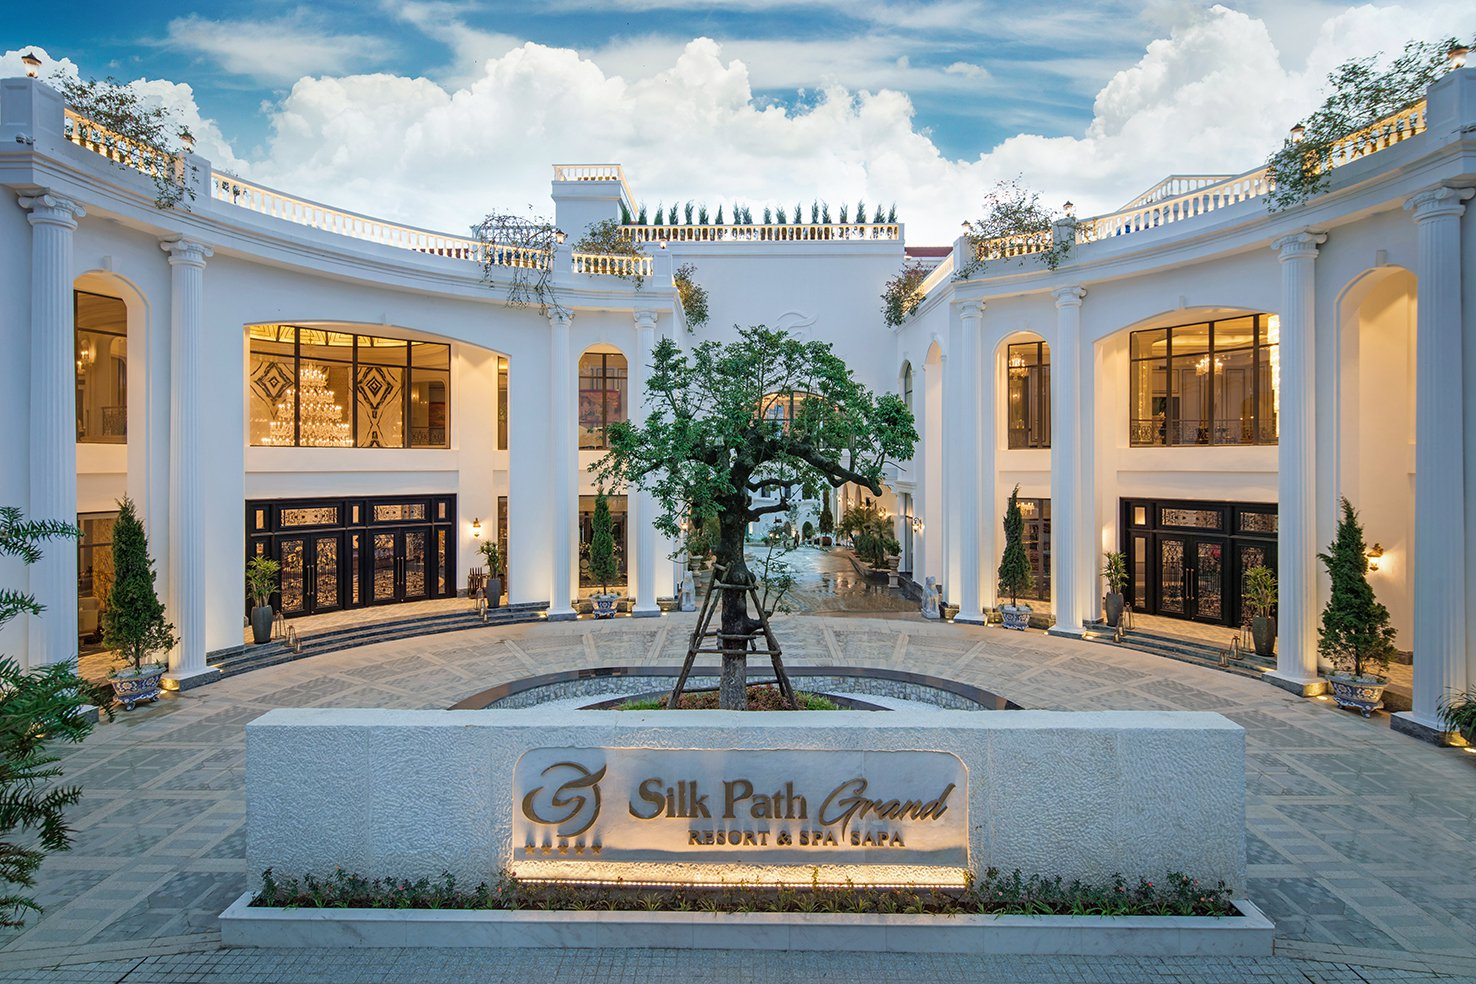 silk-path-grand-resort-ivivu-4